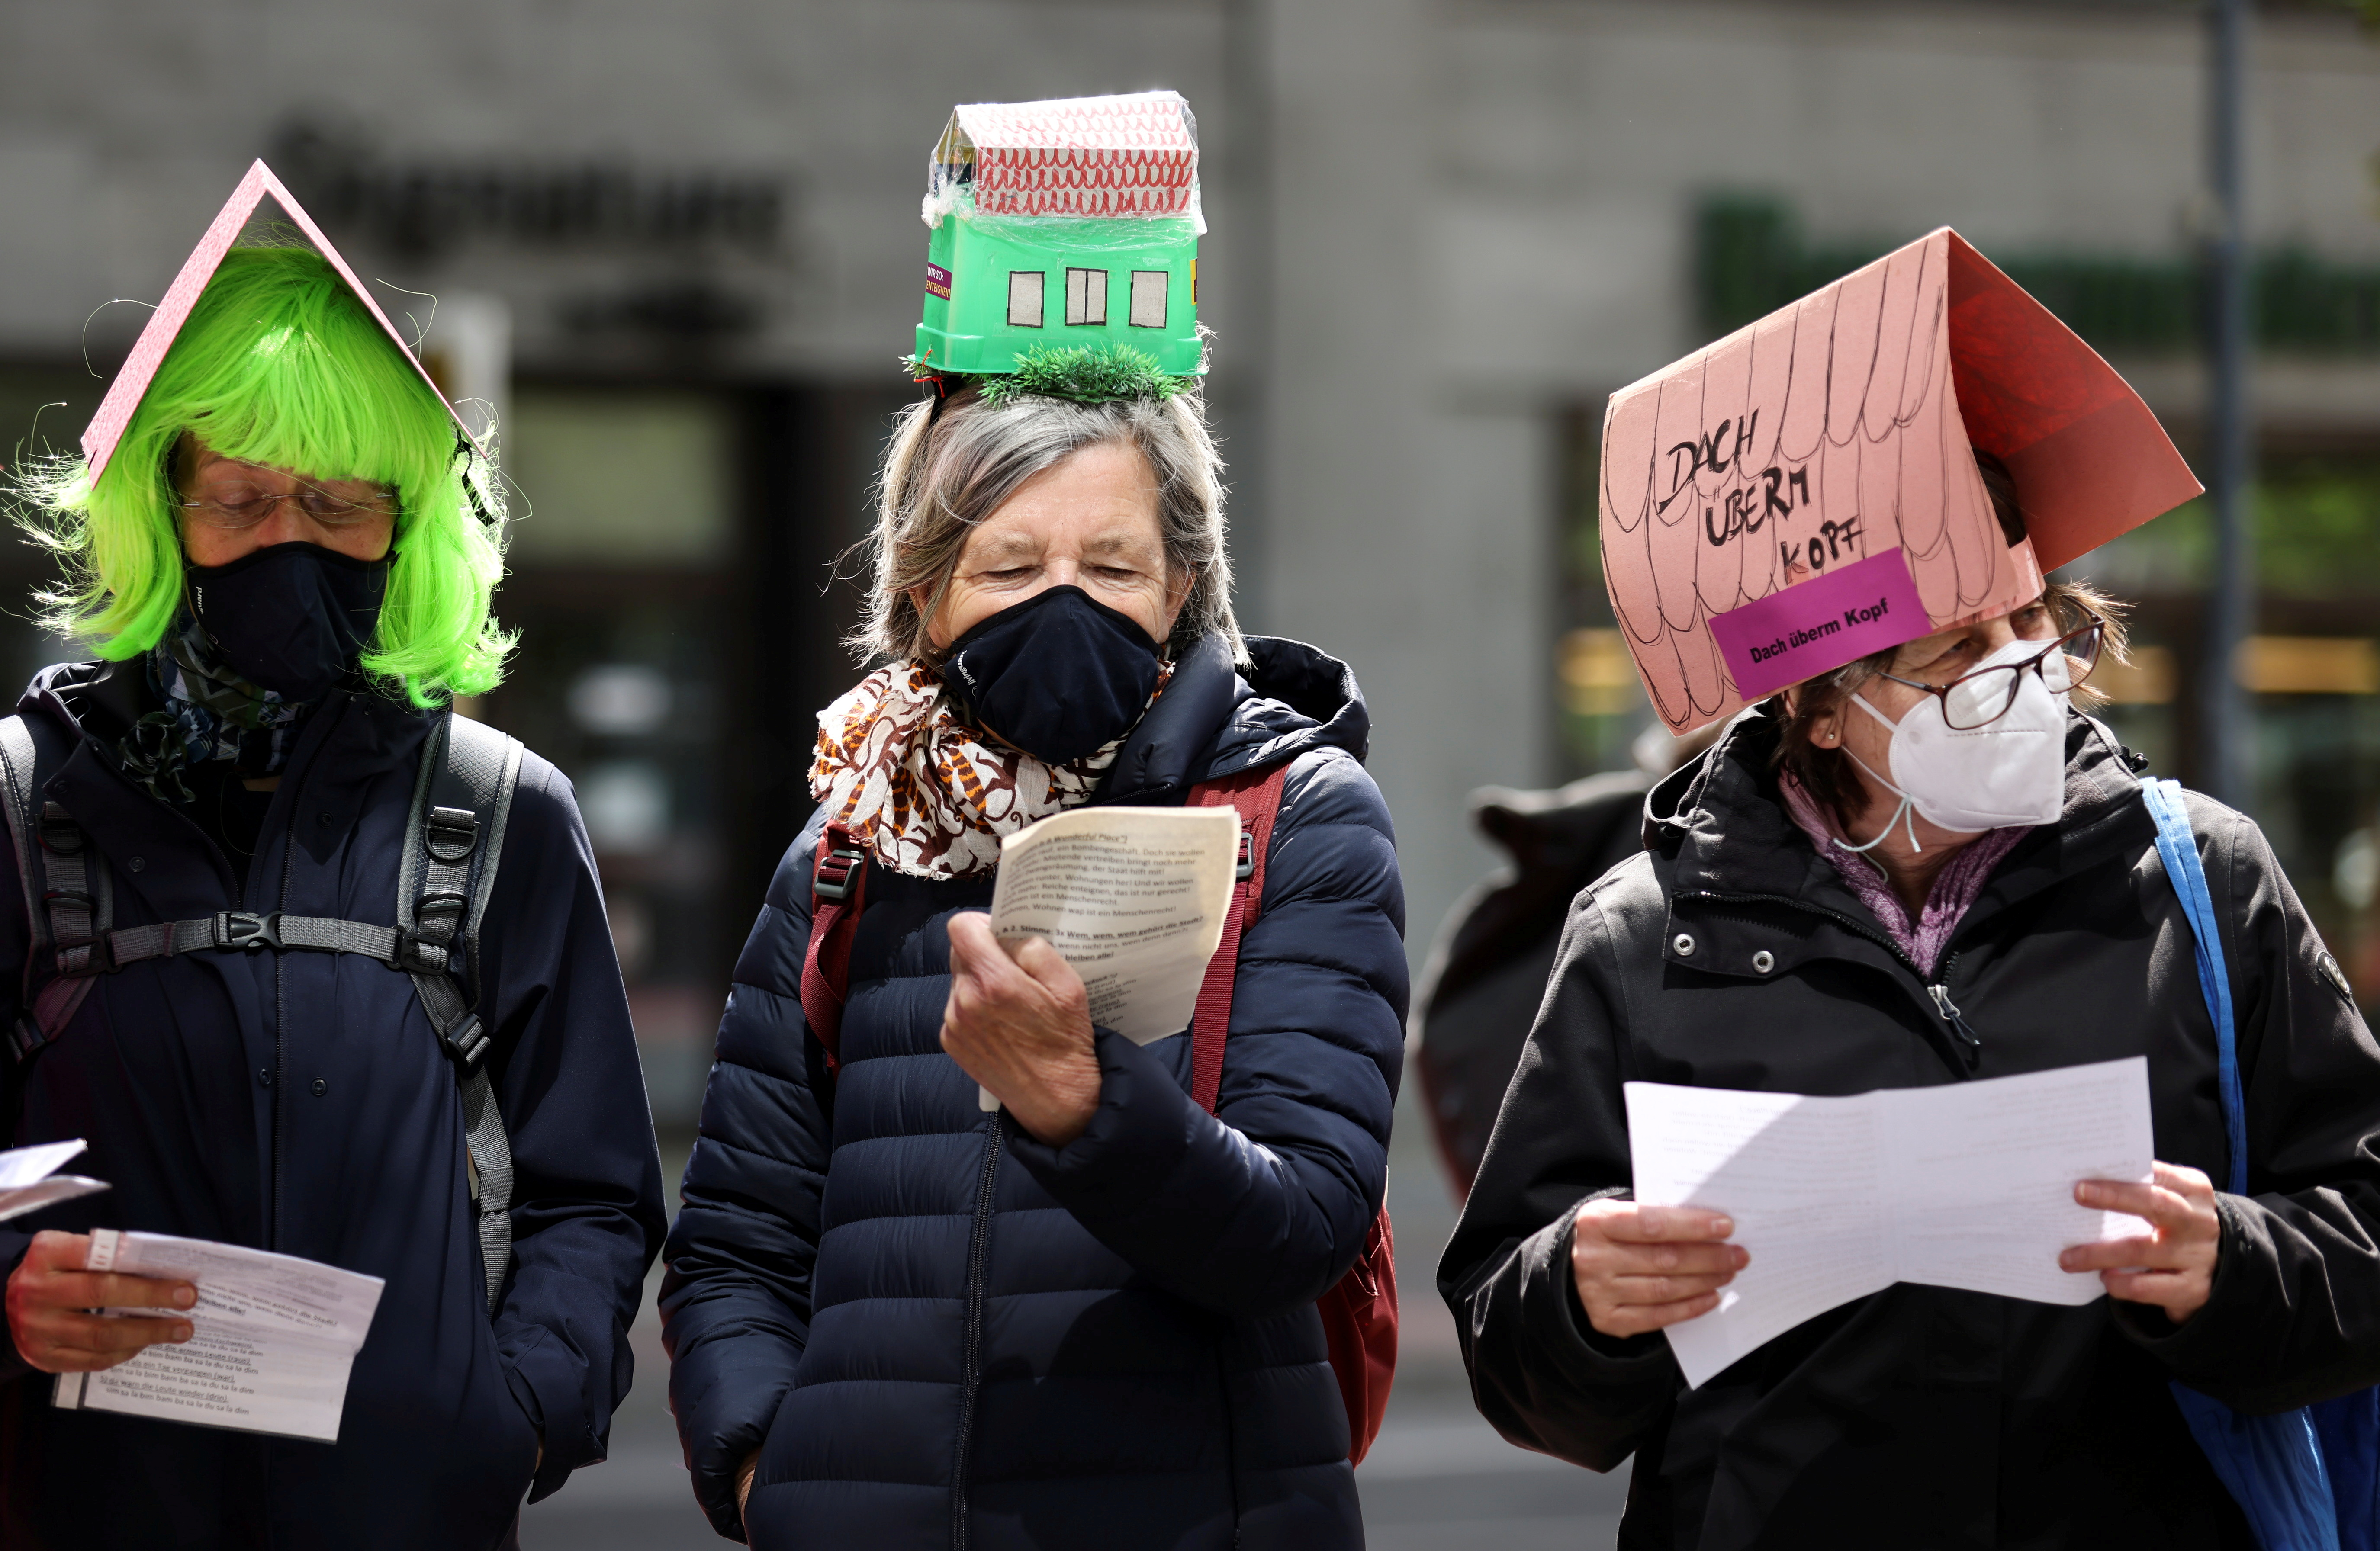 A sign on a head of a protester reads